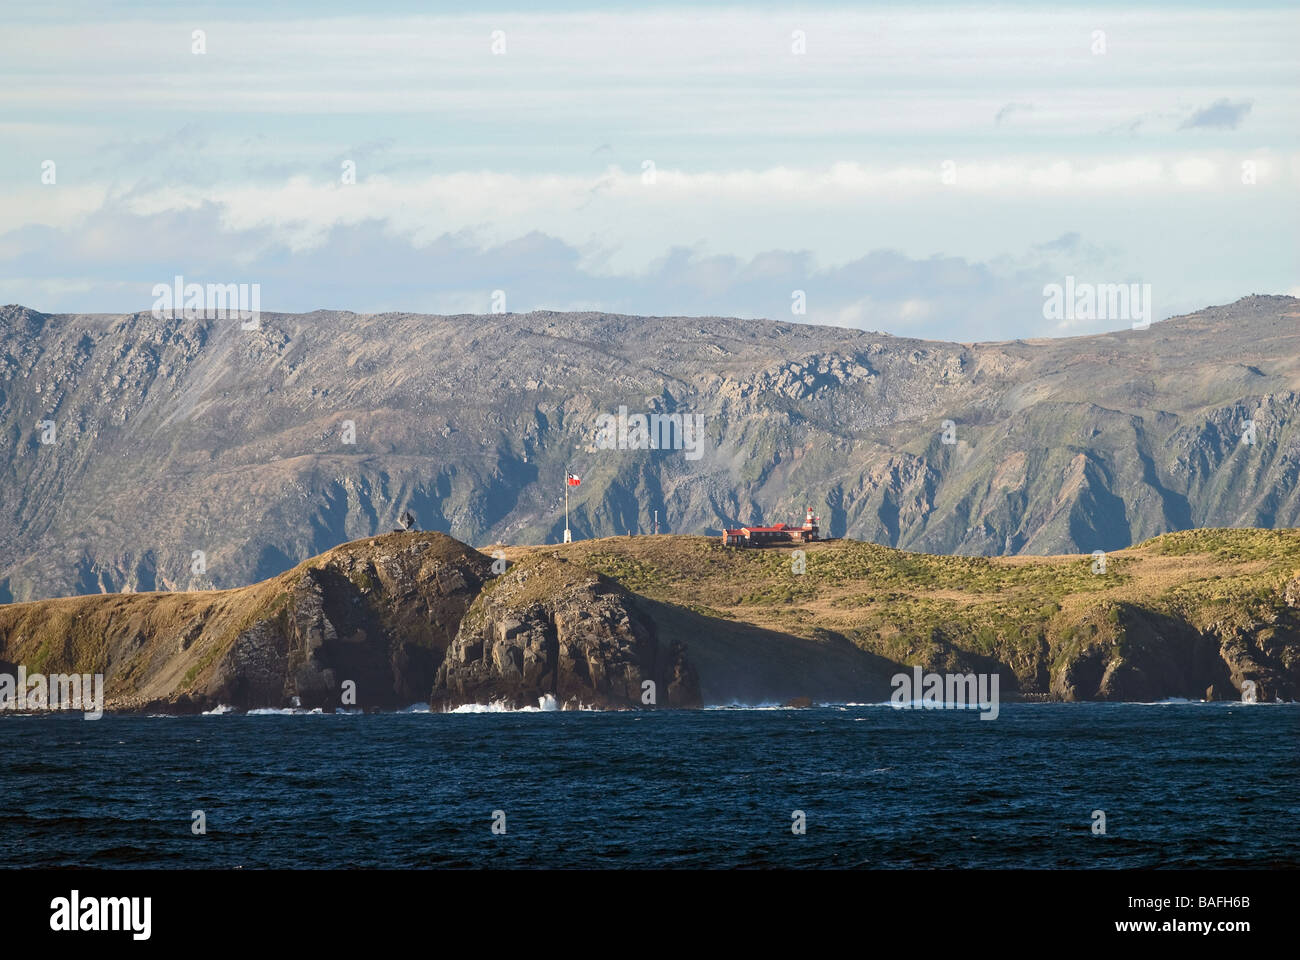 View of Cape Horn, on the Southern most tip of South America. - Stock Image